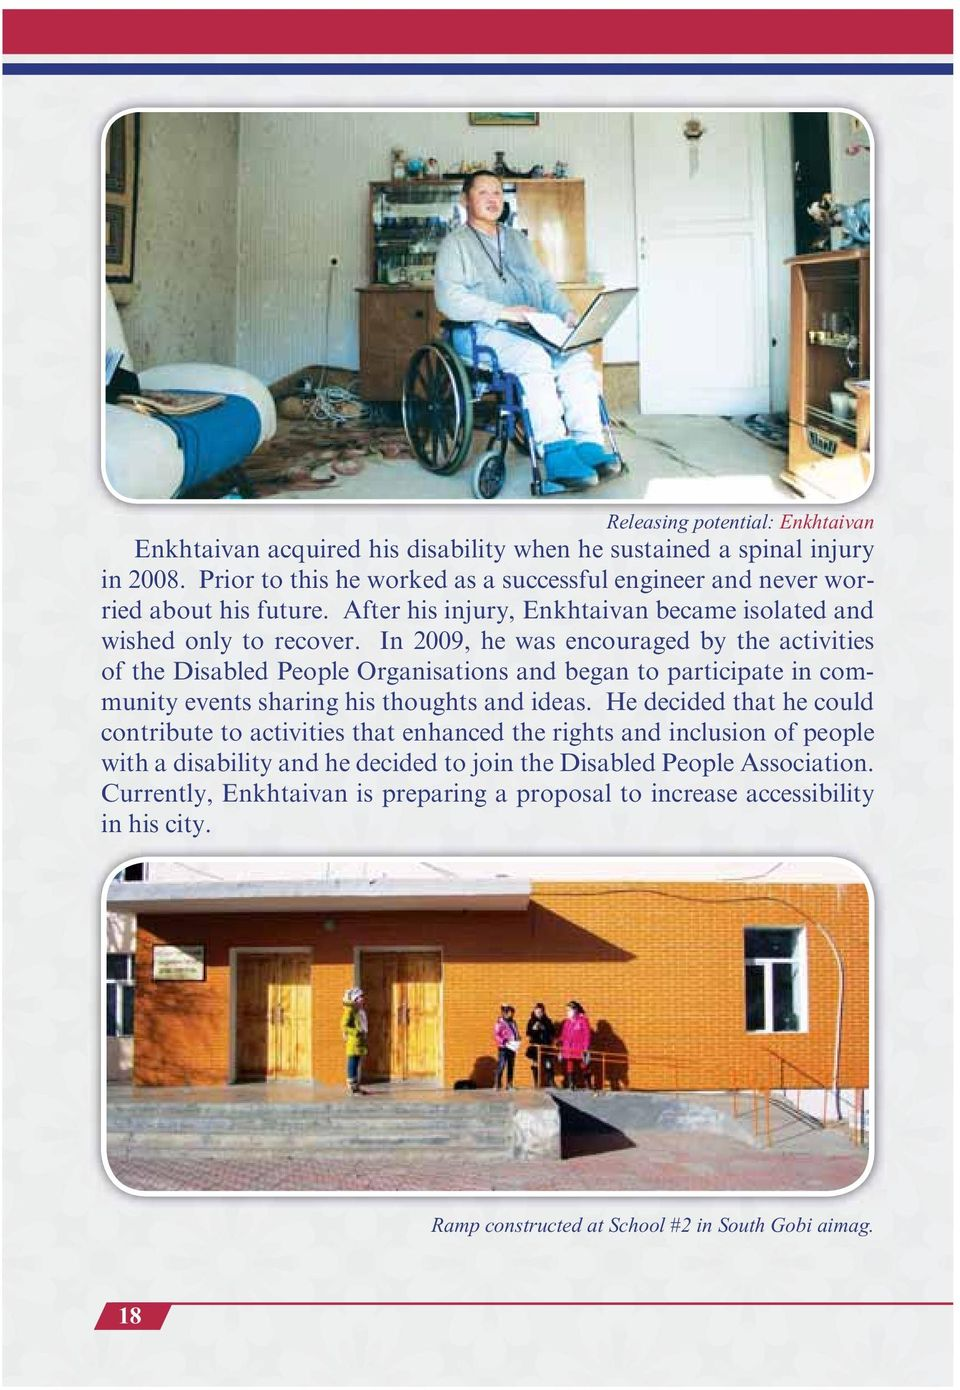 com- contribute to activities that enhanced the rights and inclusion of people with a disability and he decided to